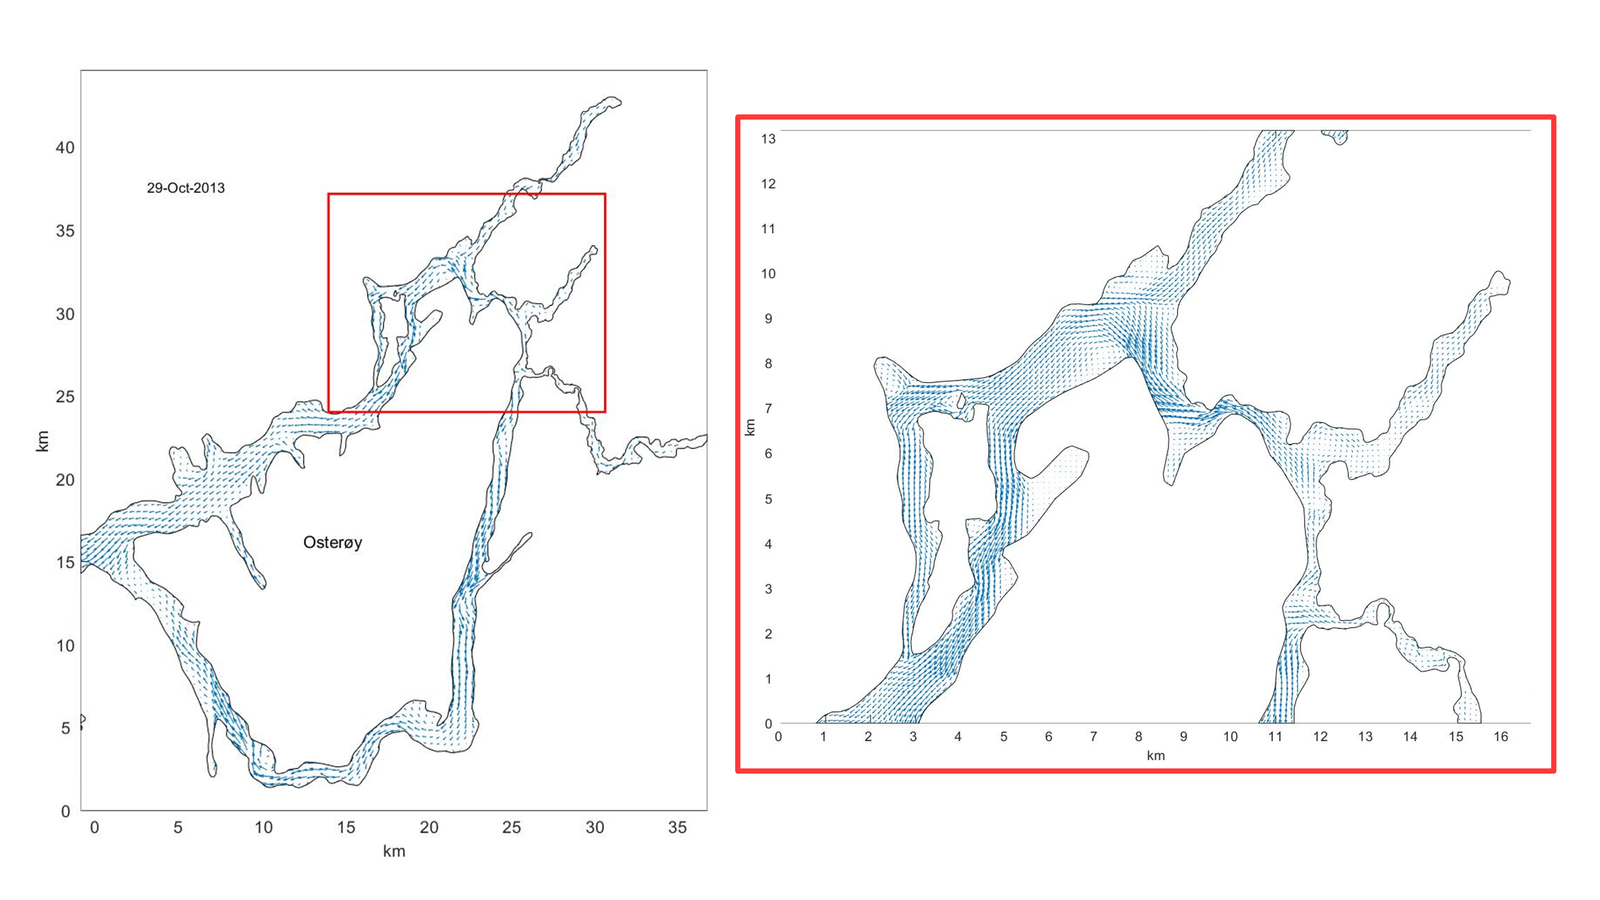 Figure 4: Example of modelled daily mean surface currents in Osterfjorden 29 oct. 2013. The right panel shows the whole Osterfjorden and the left panel is zoomed version of the part in on the square.